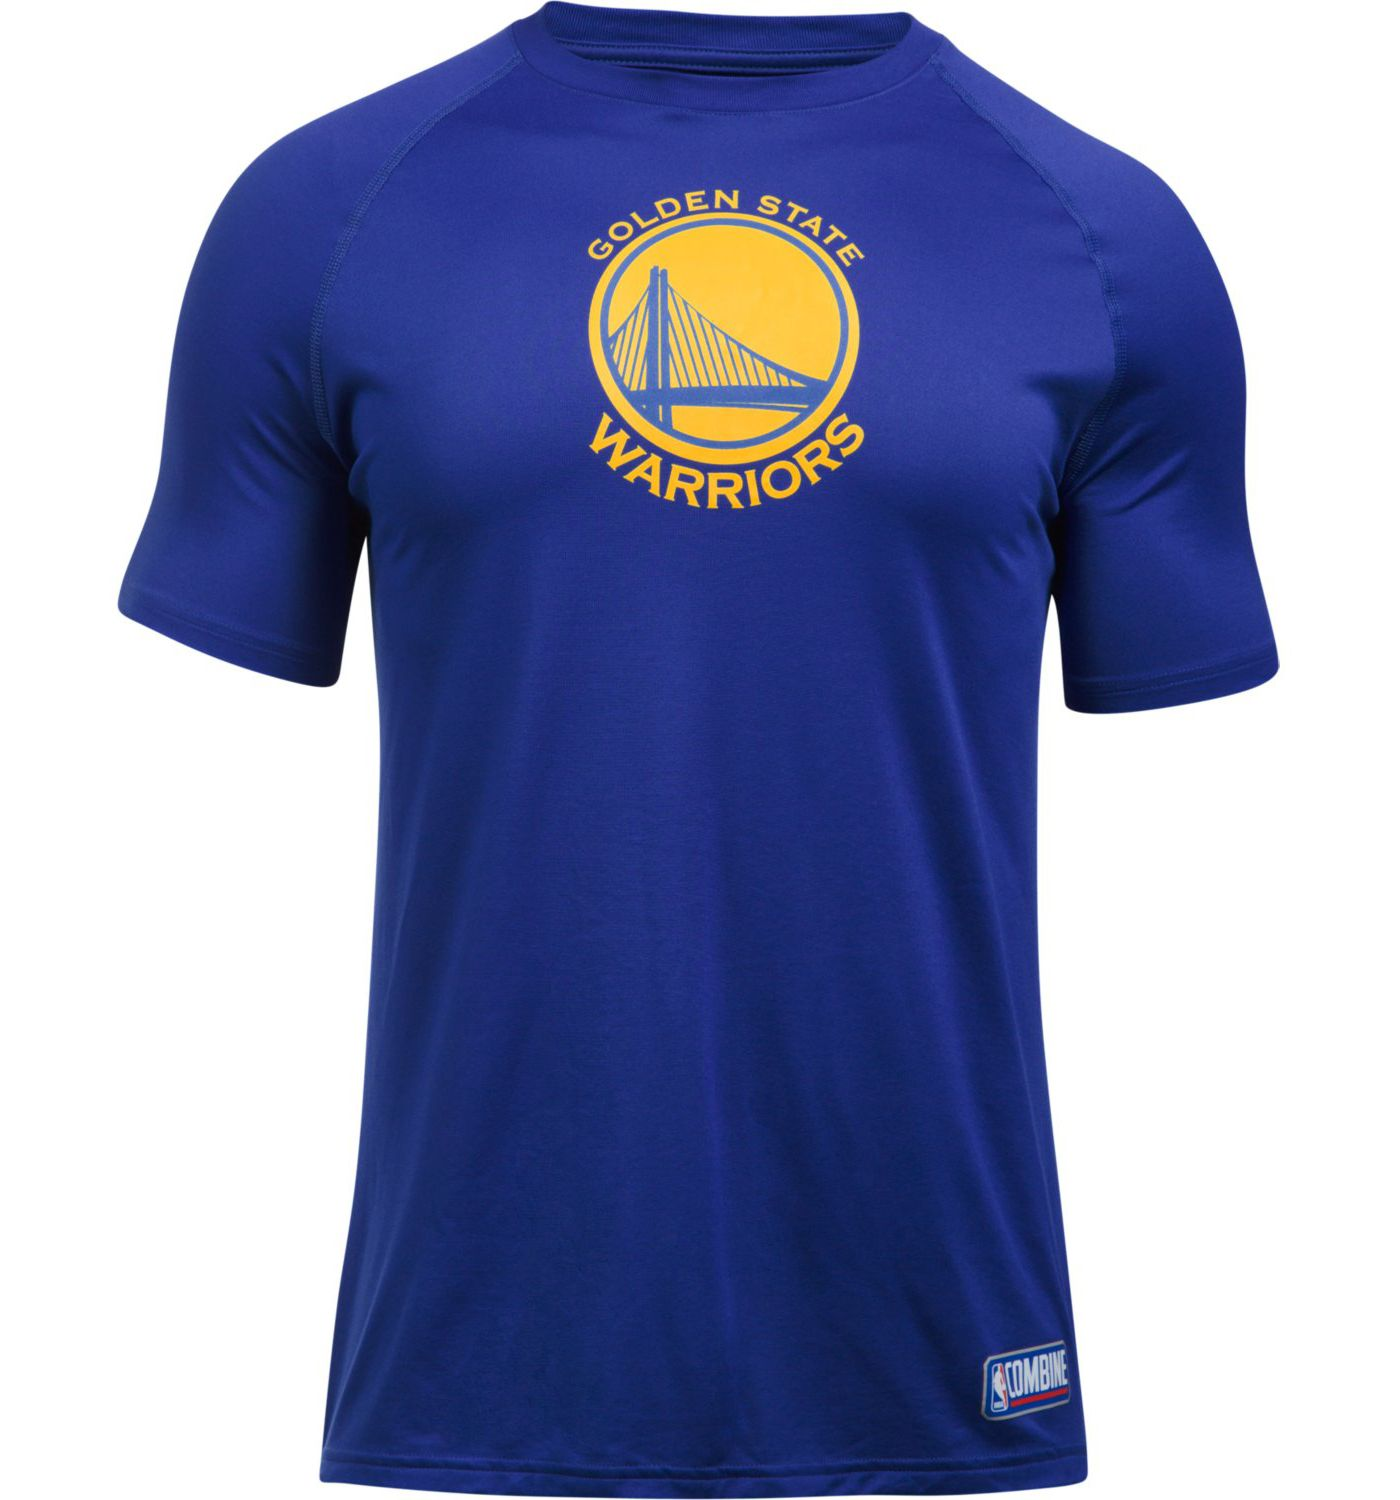 Under Armour Men's Golden State Warriors T-Shirt